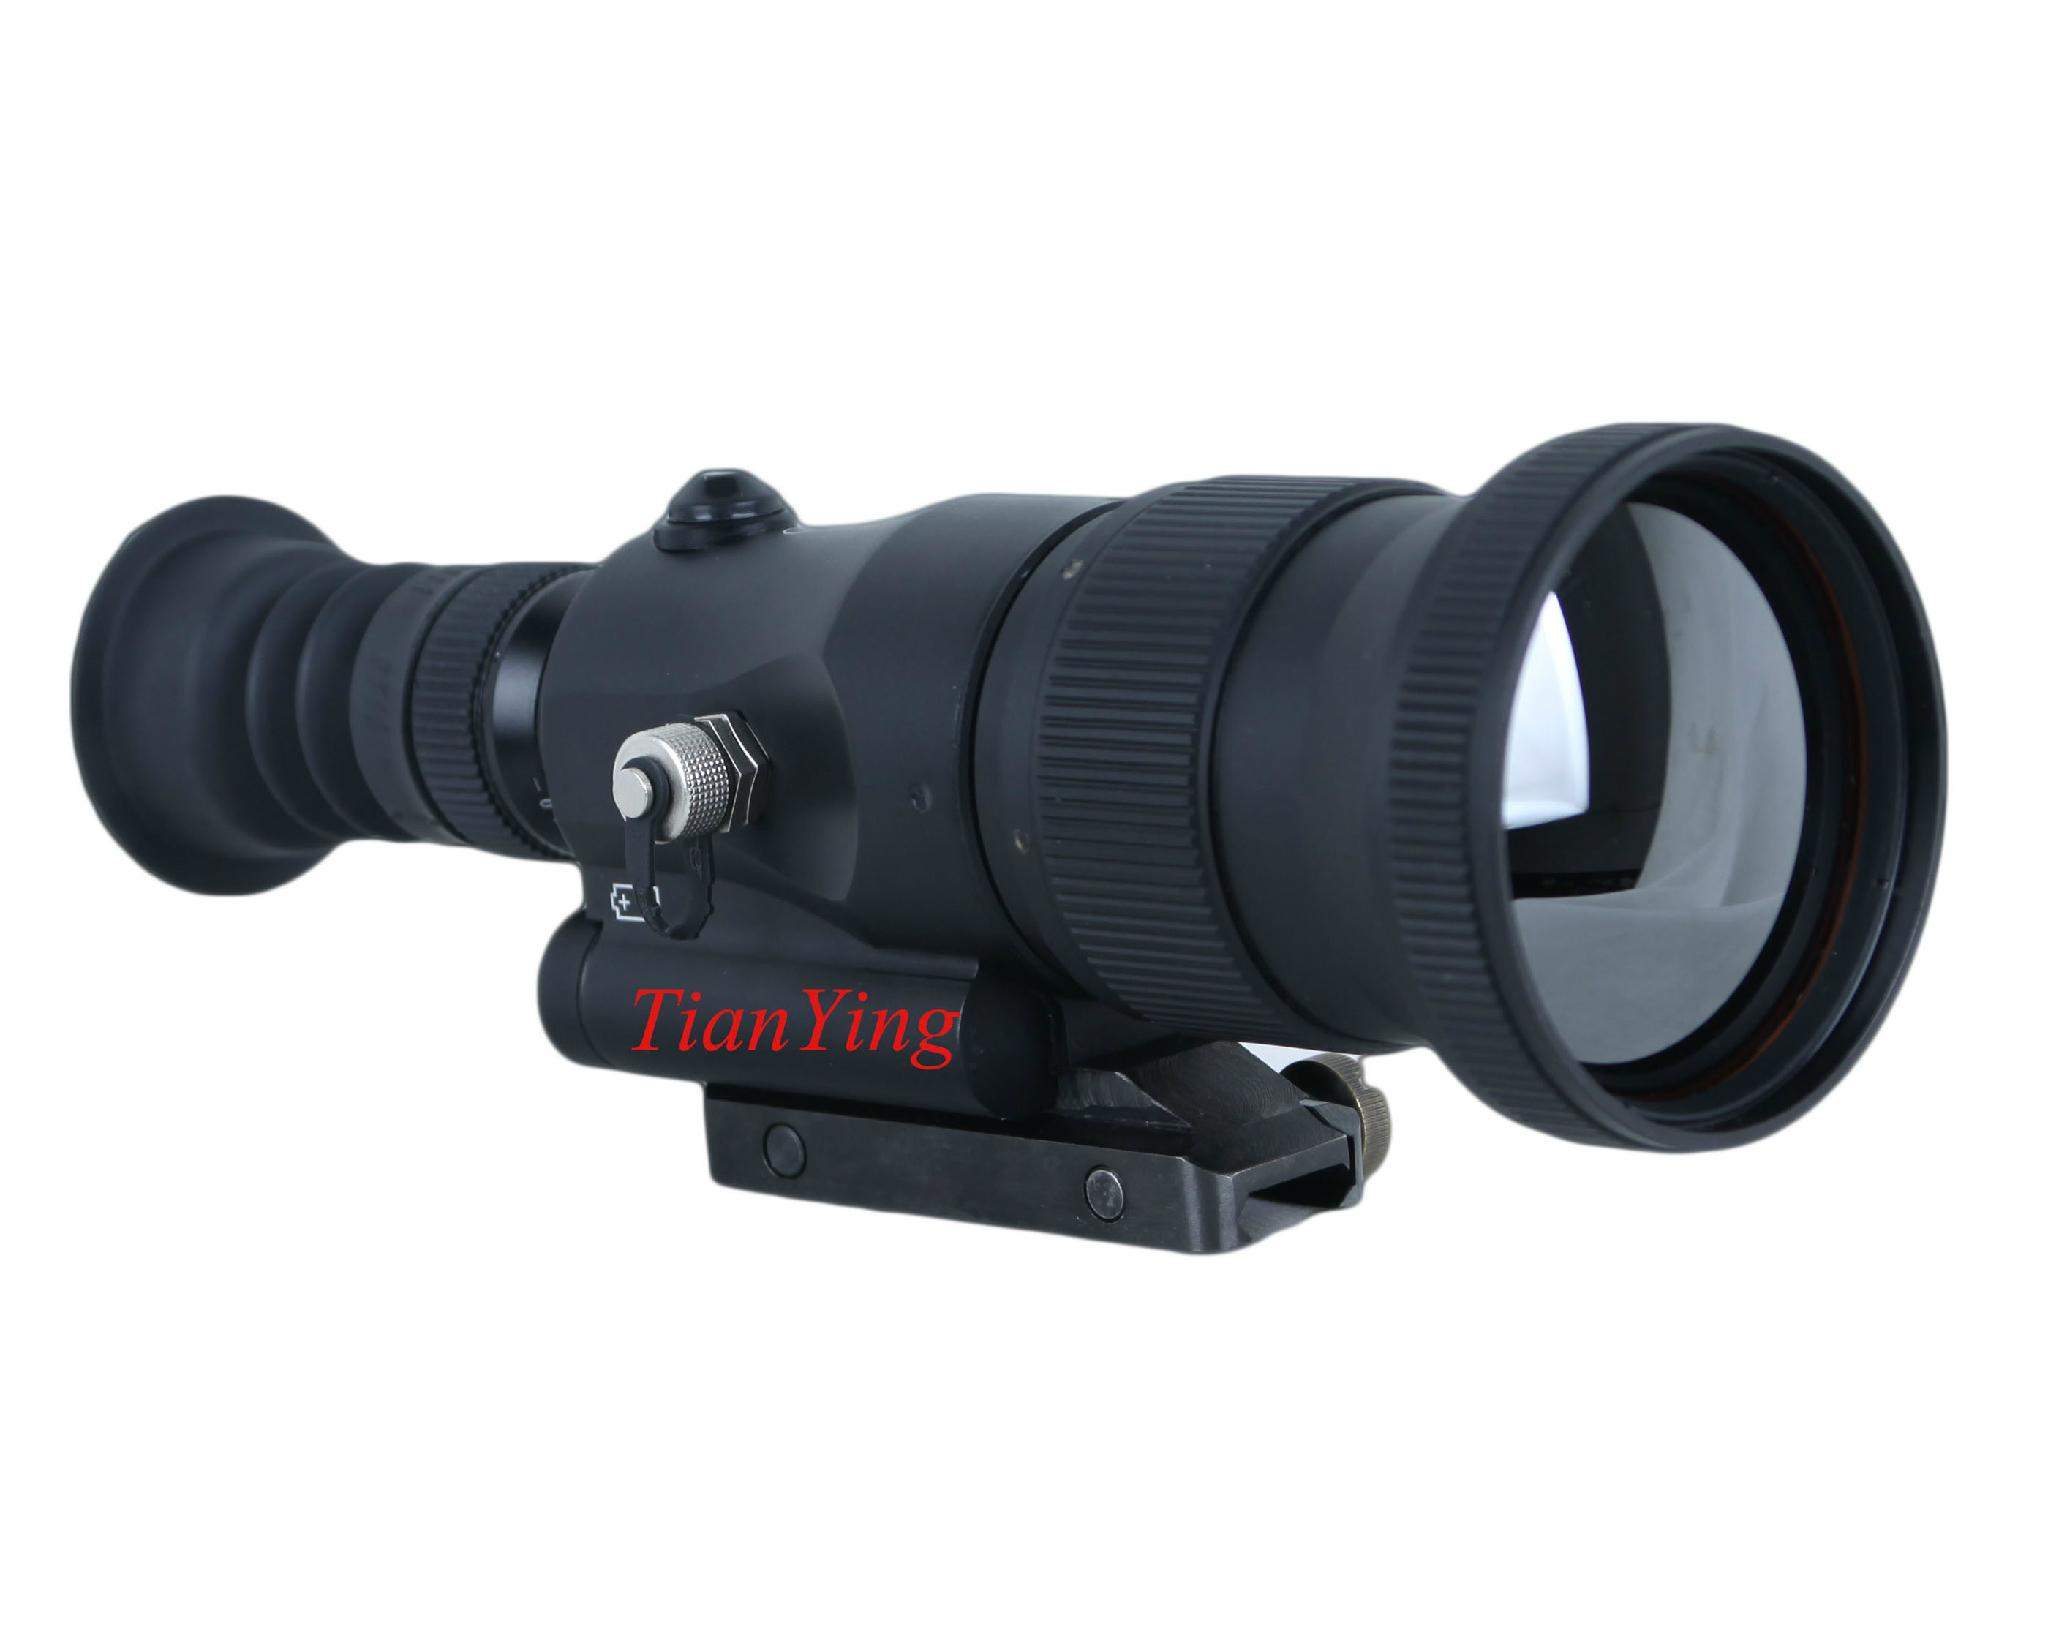 640x512 60mm Lens 800m Thermal Imaging Weapon Sights